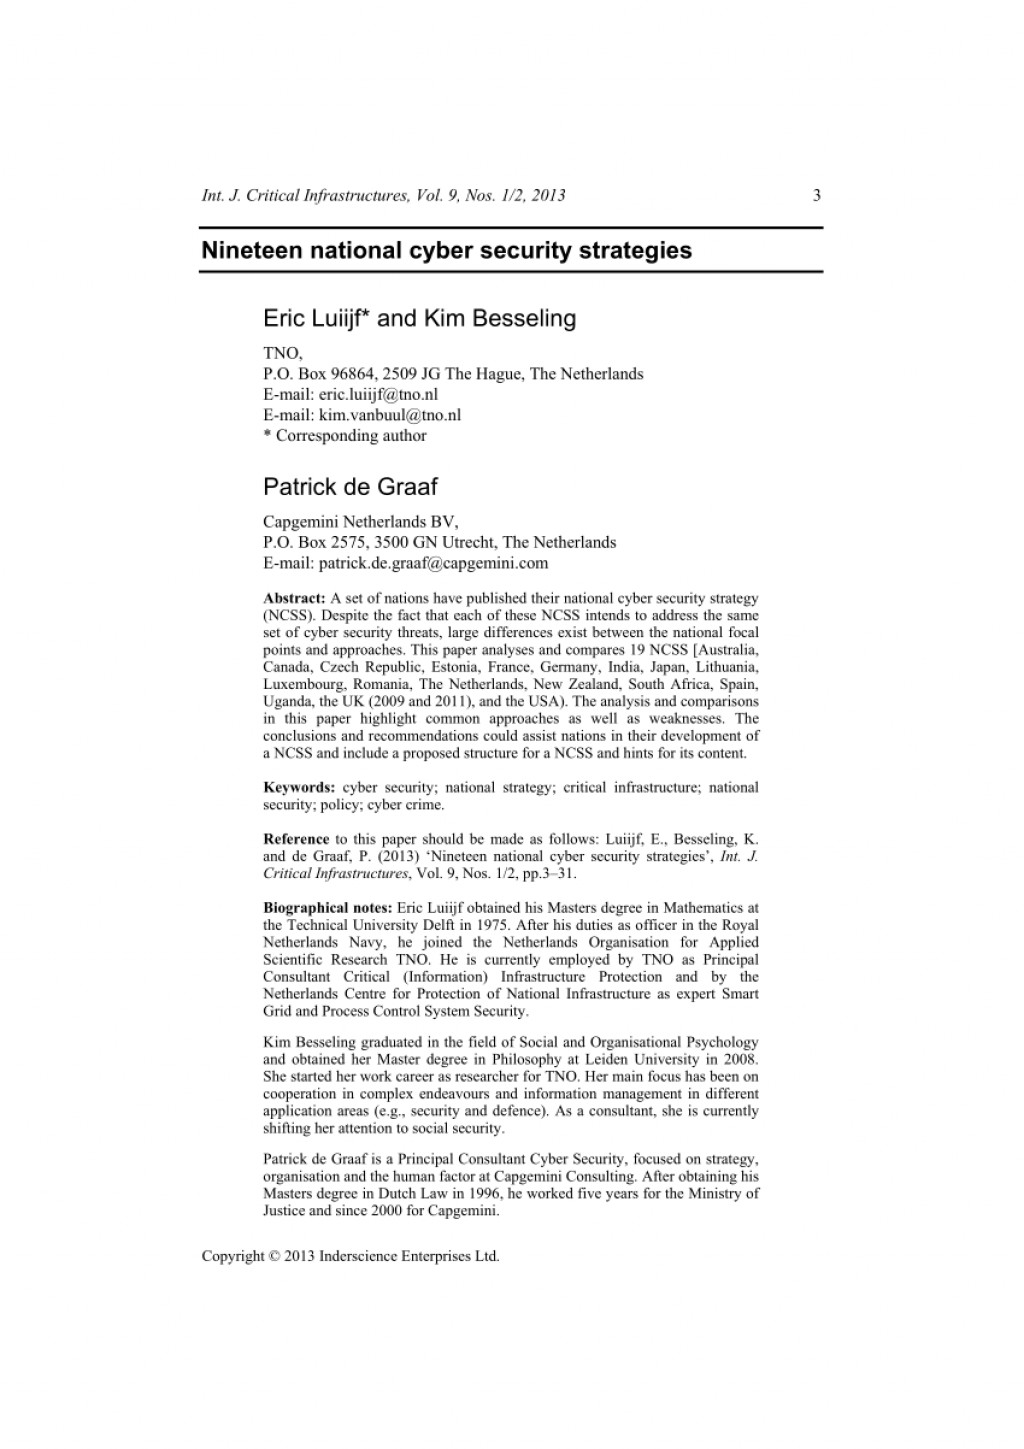 004 Research Paper Largepreview Cyber Security Unique Ideas Large